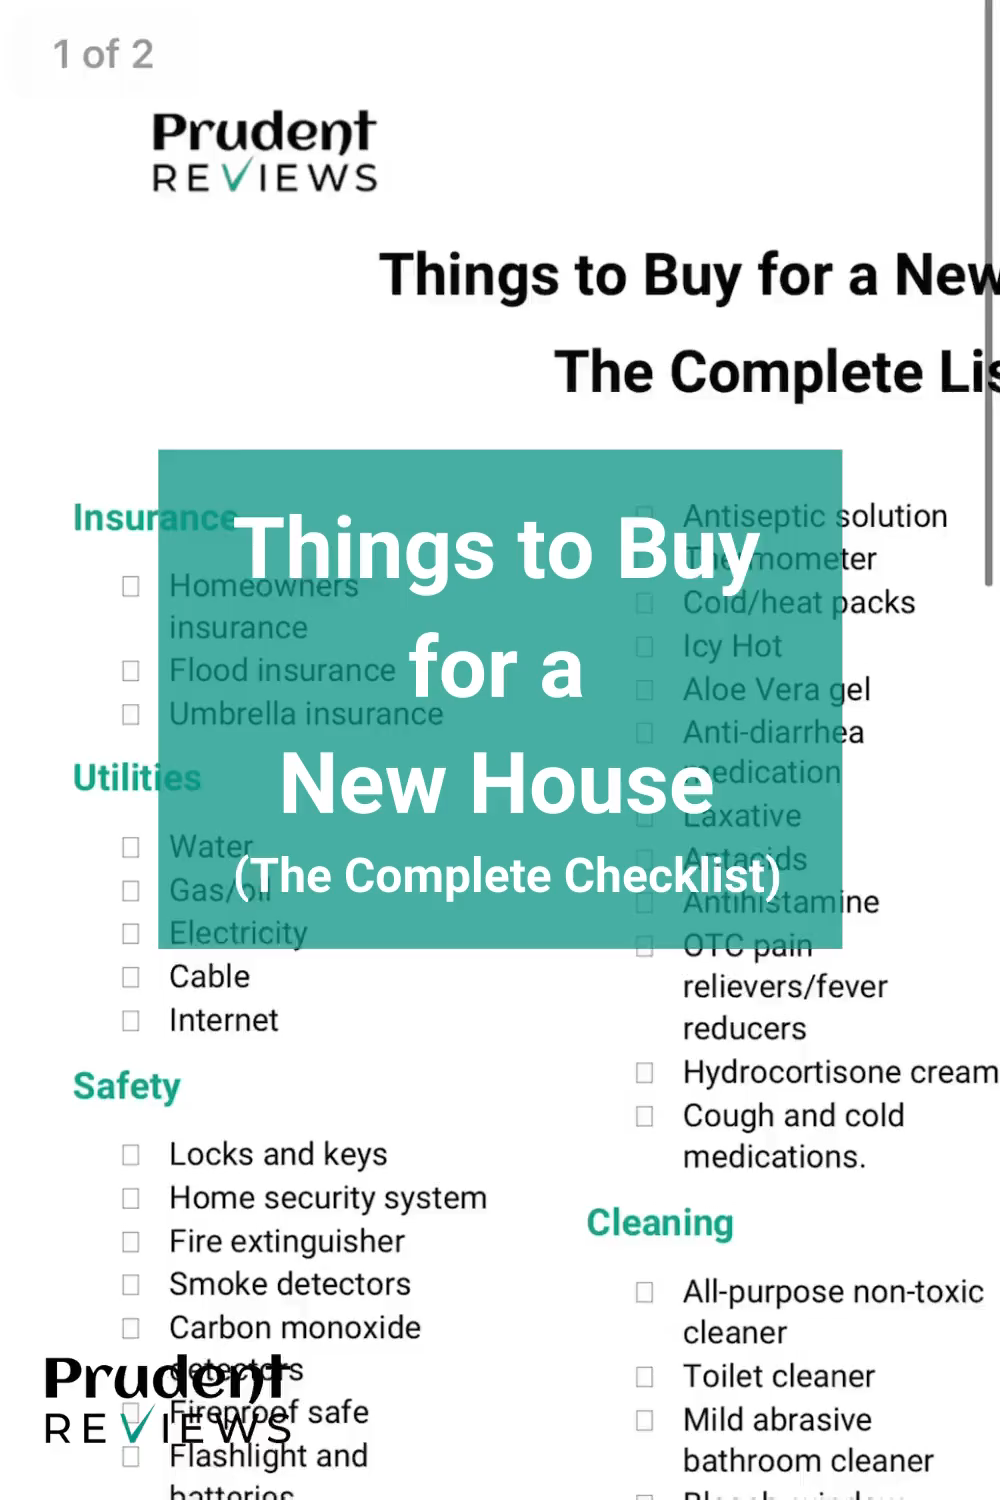 Now that you bought a new house, you're probably wondering:  What are the things I need to buy right now?  To make the process of moving in and getting set up much less stressful, I put together this comprehensive list of all the things you need to buy for a new house. This checklist is available to download as a PDF. All you have to do is click, print, and start shopping.